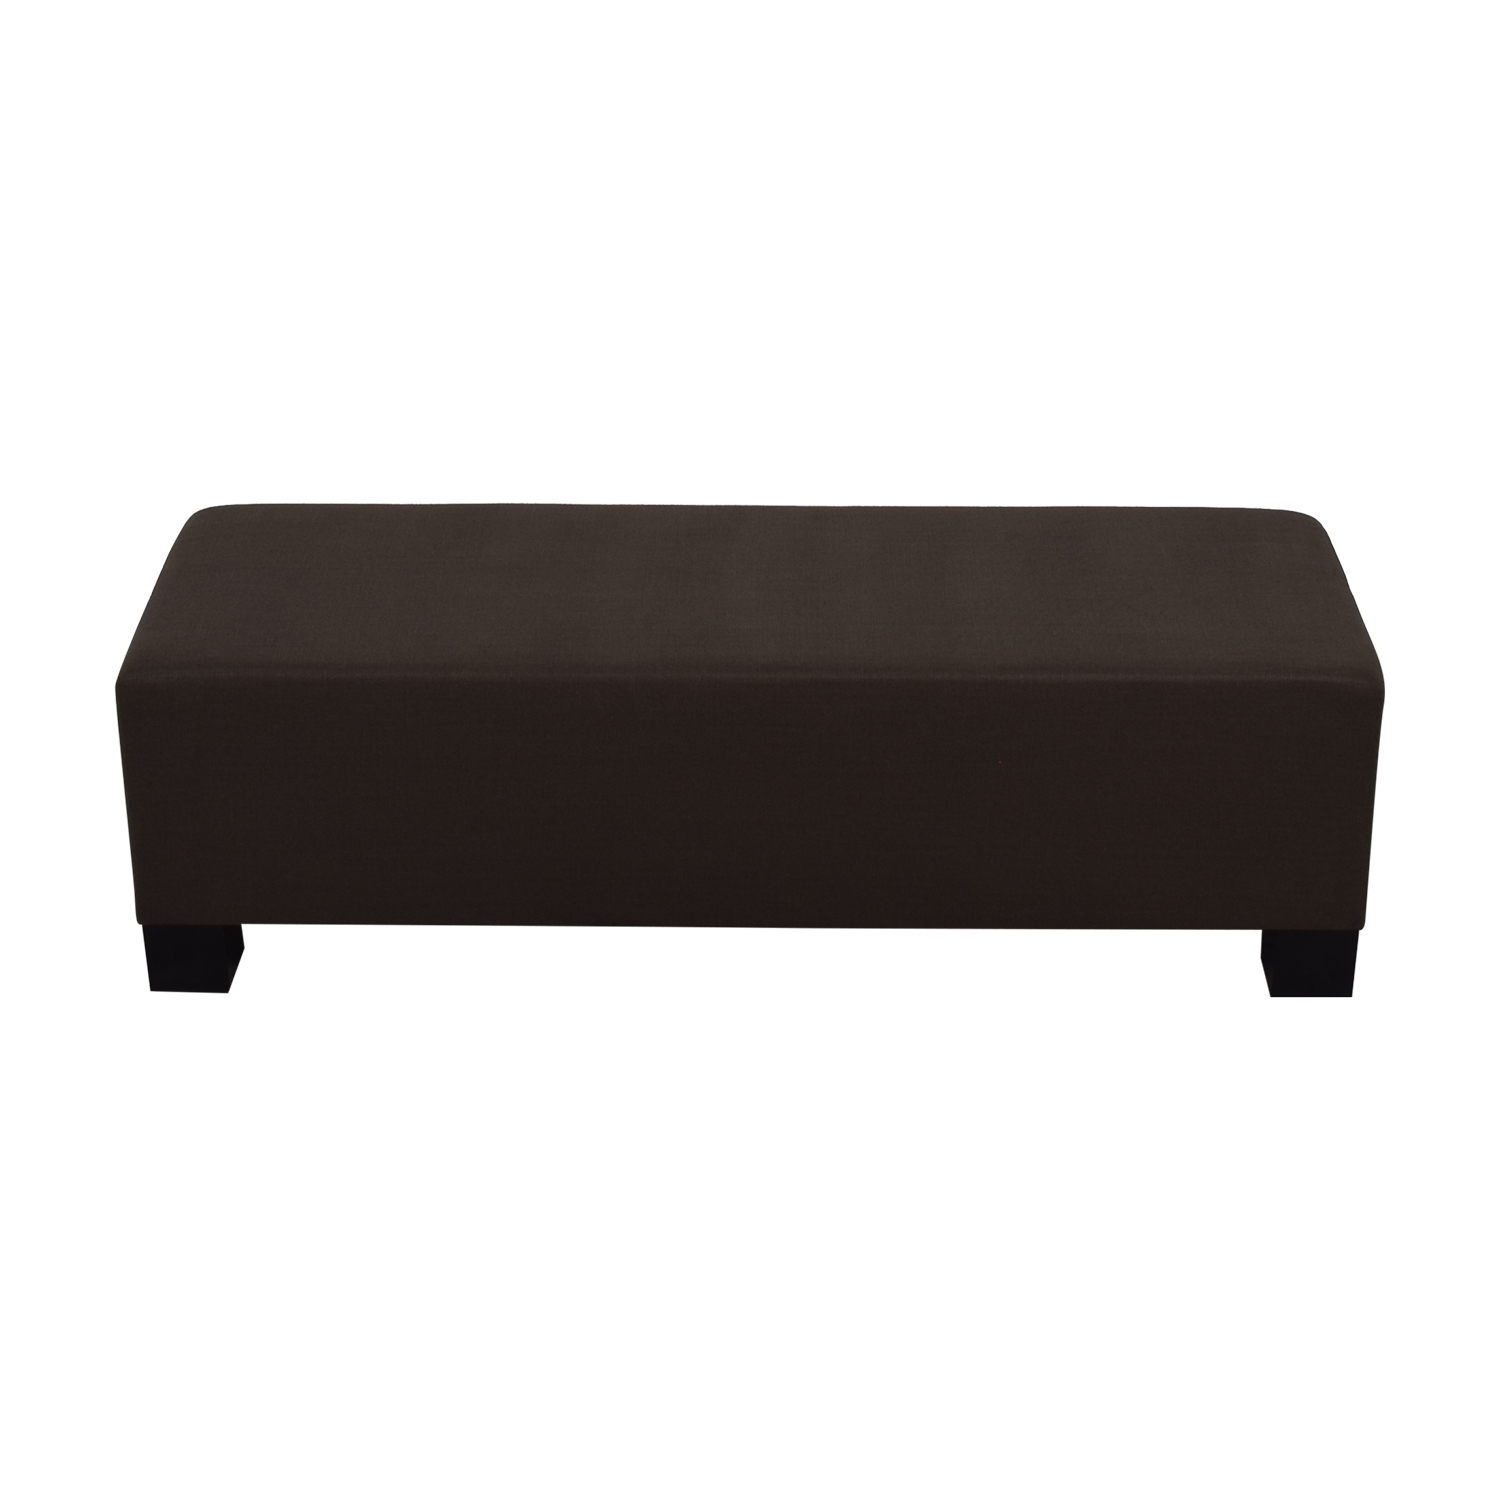 Furniture Masters Furniture Masters Grey Bench price